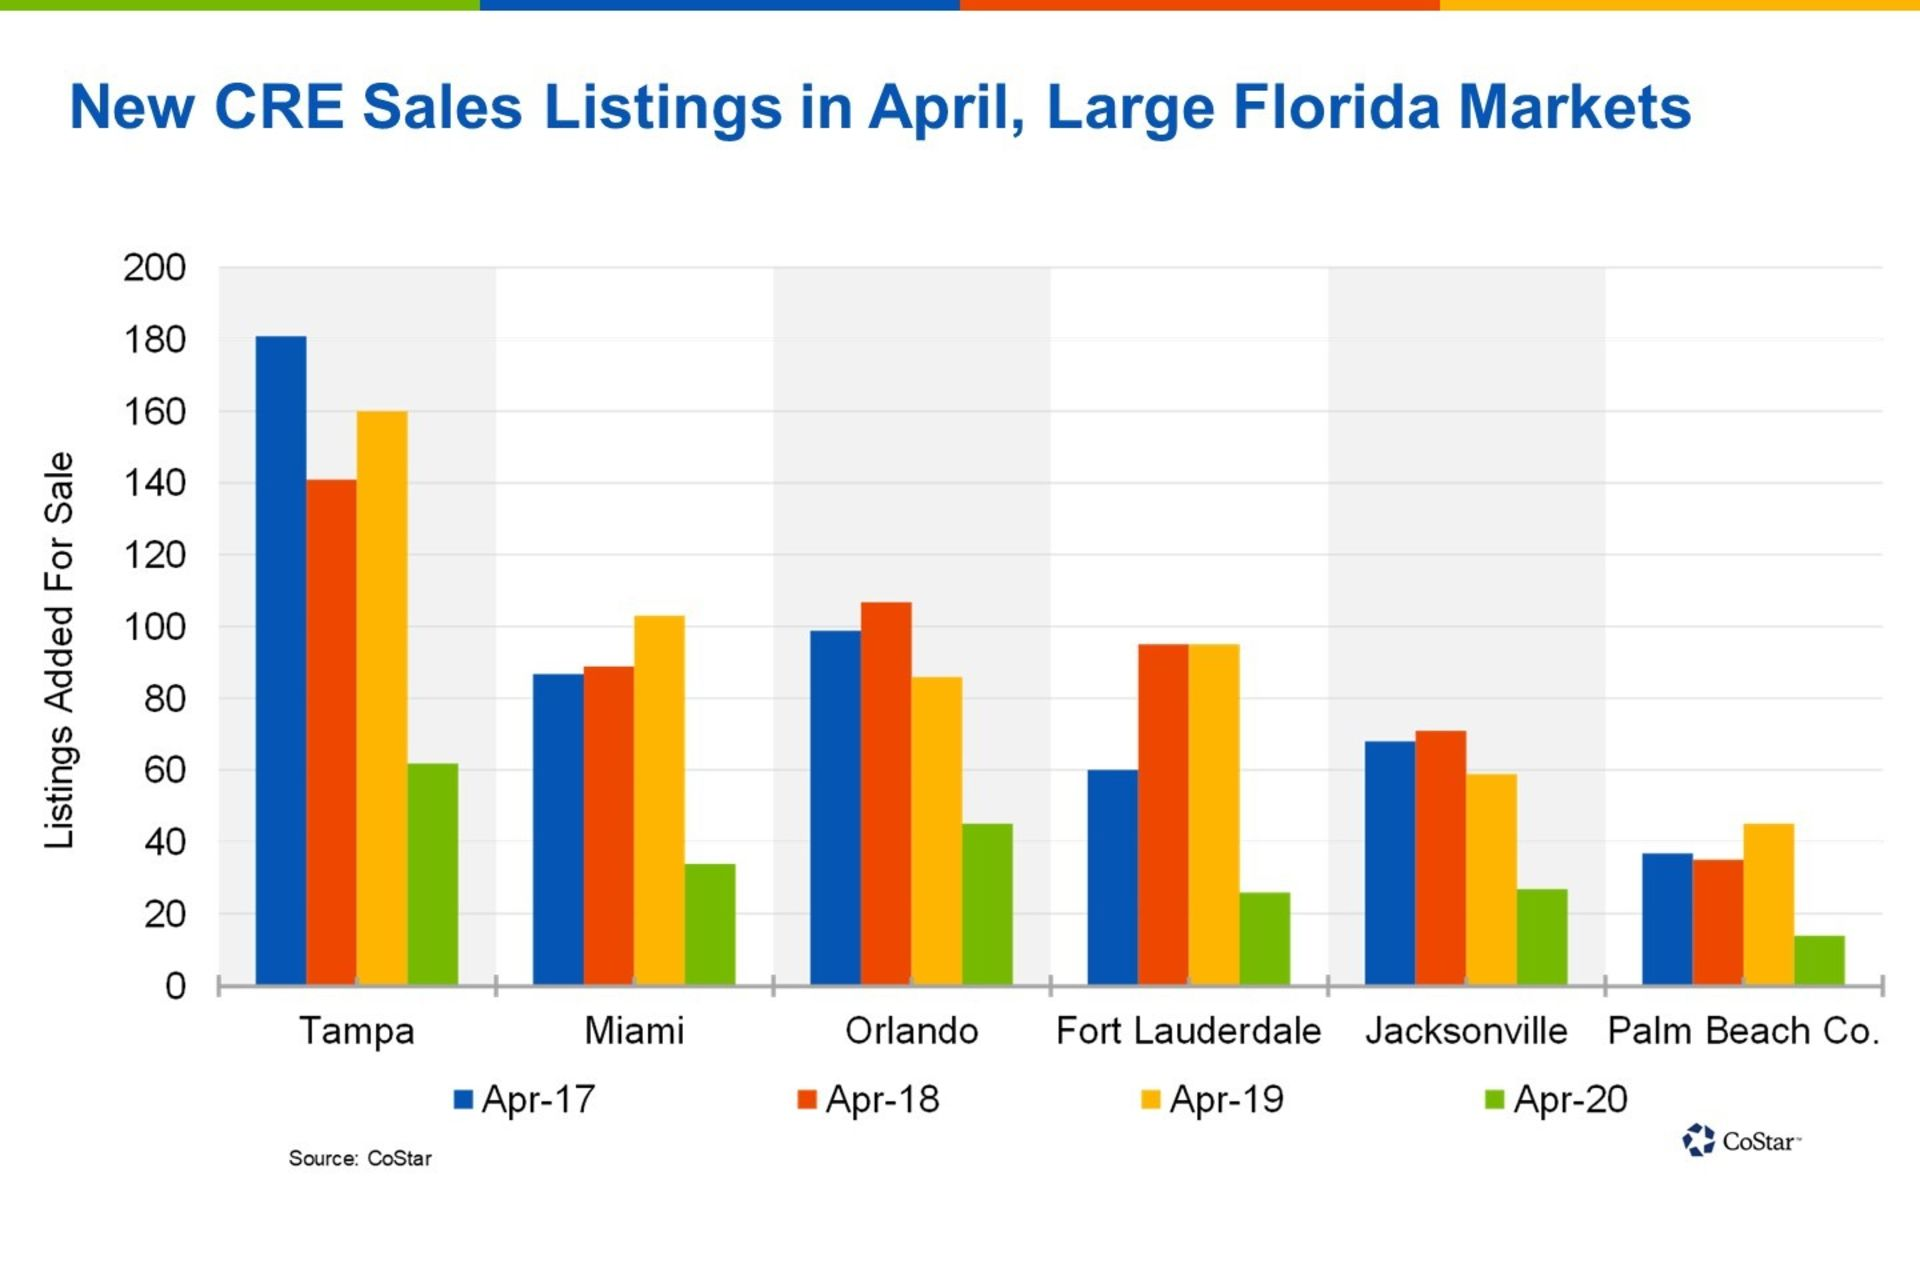 Florida Sees Drop in New Commercial Real Estate Sale Listings